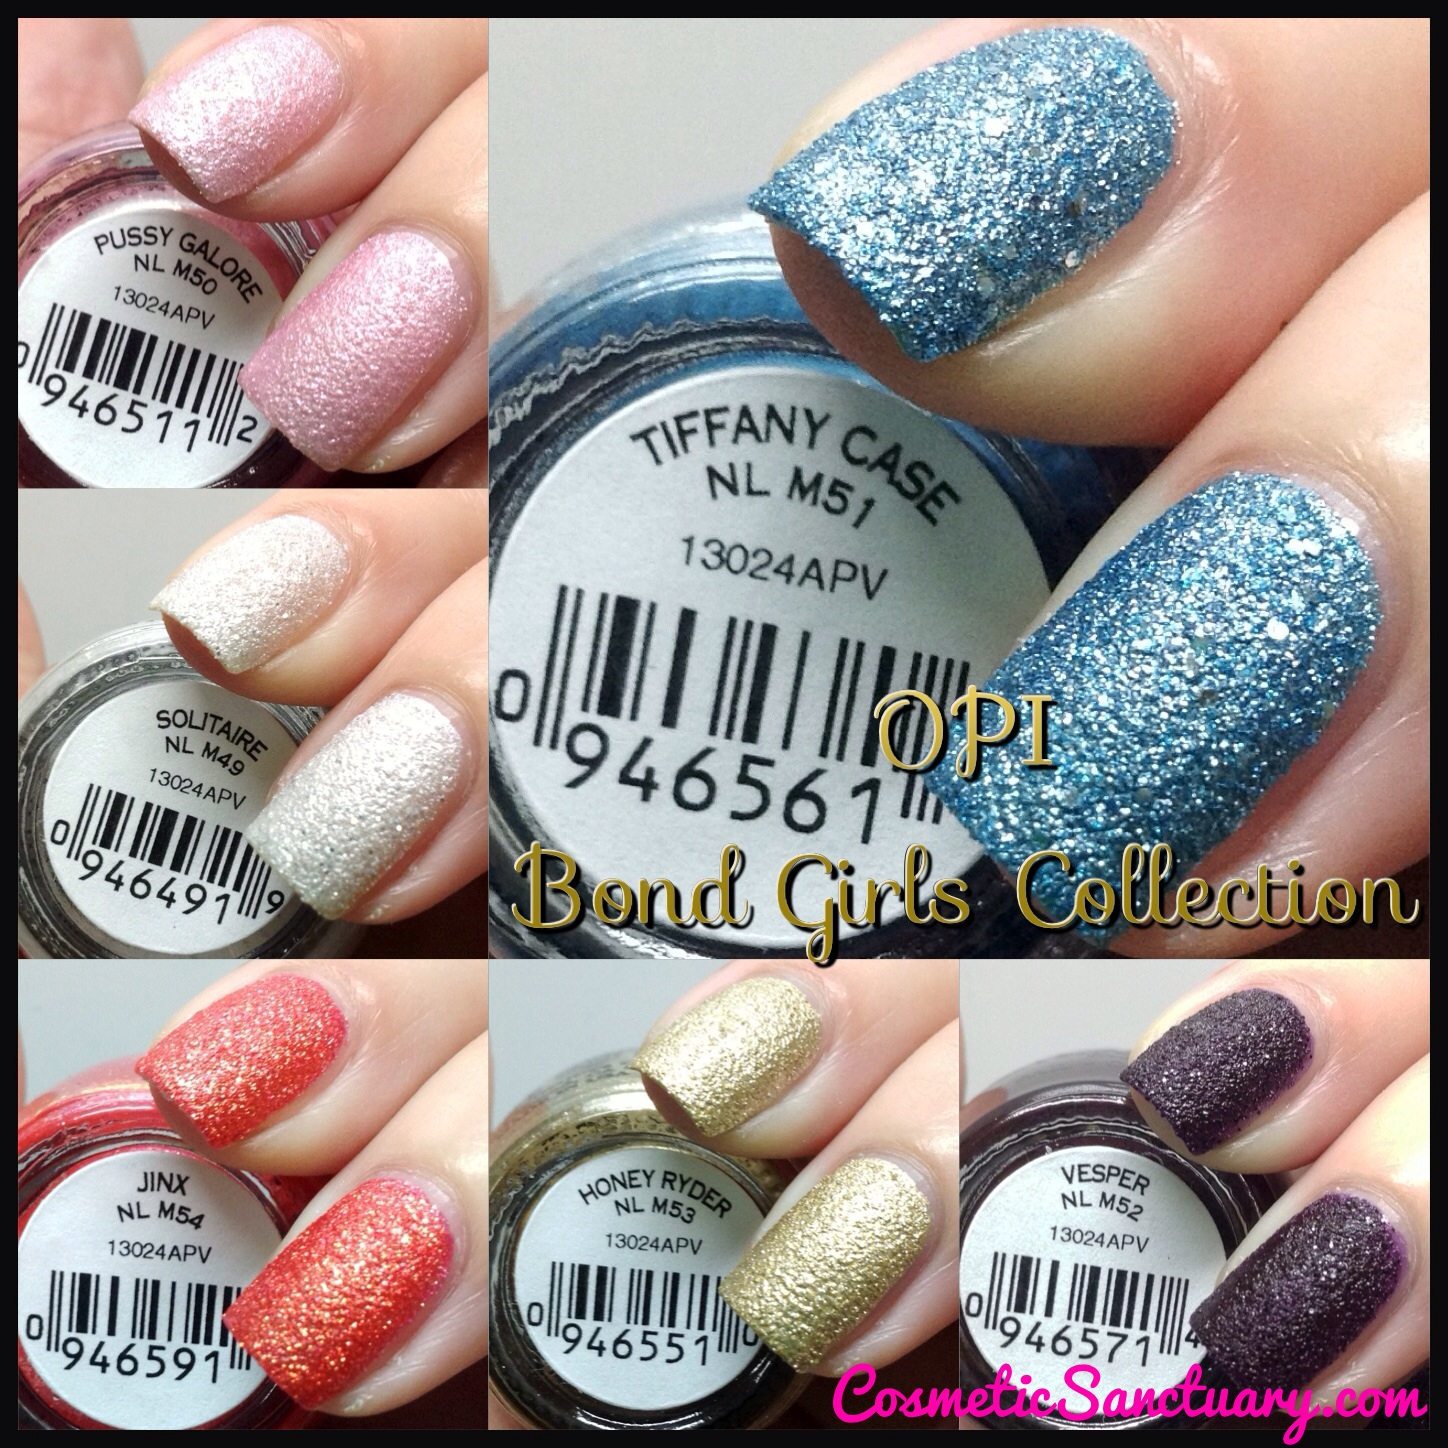 OPI Bond Girls Collection Swatches and Reviews